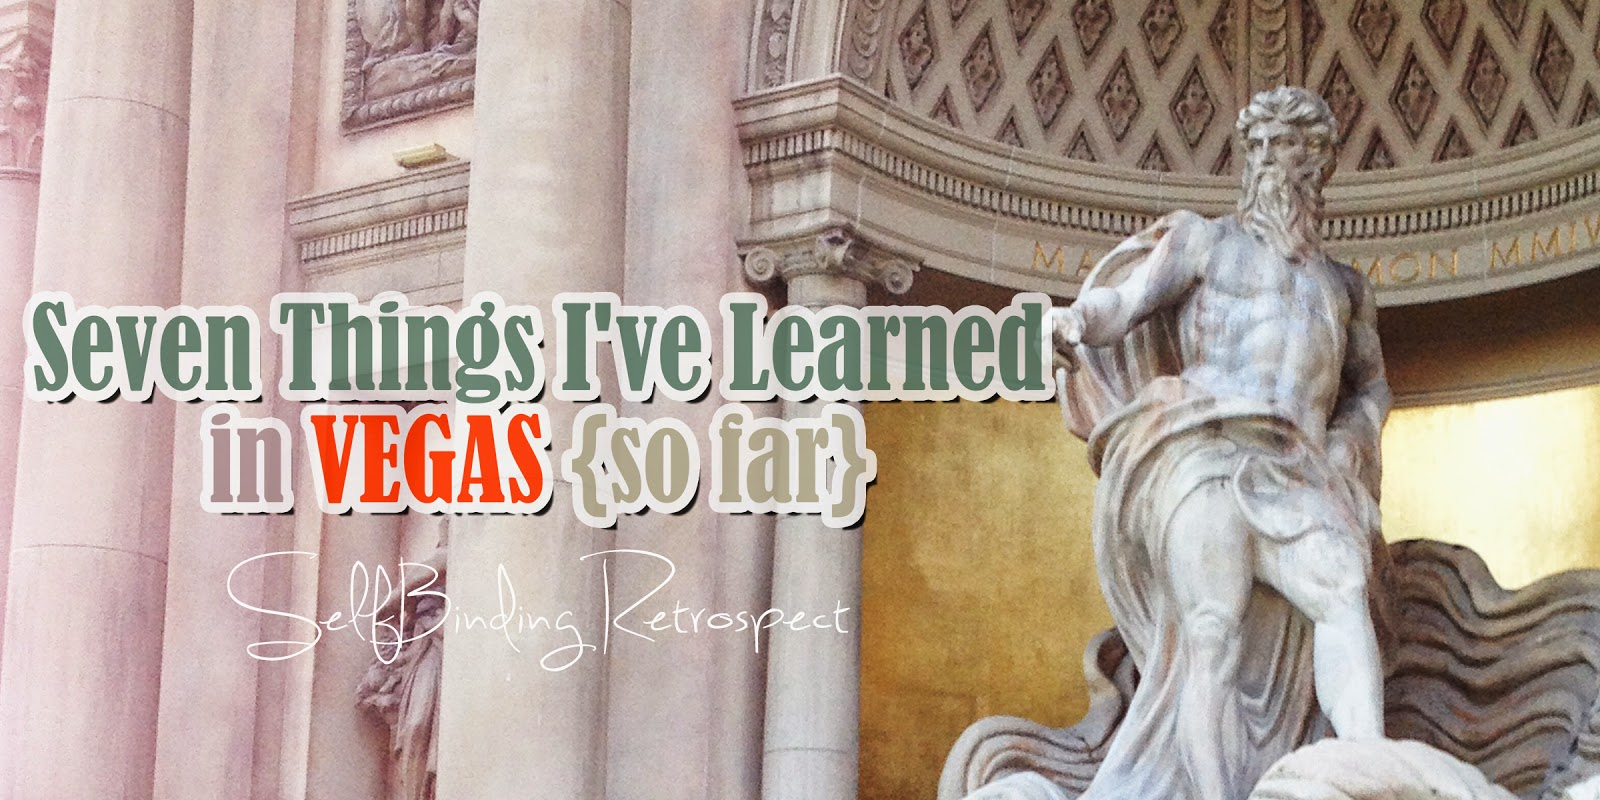 Seven Things I've Learned In Vegas - SelfBinding Retrospect by Alanna Rusnak